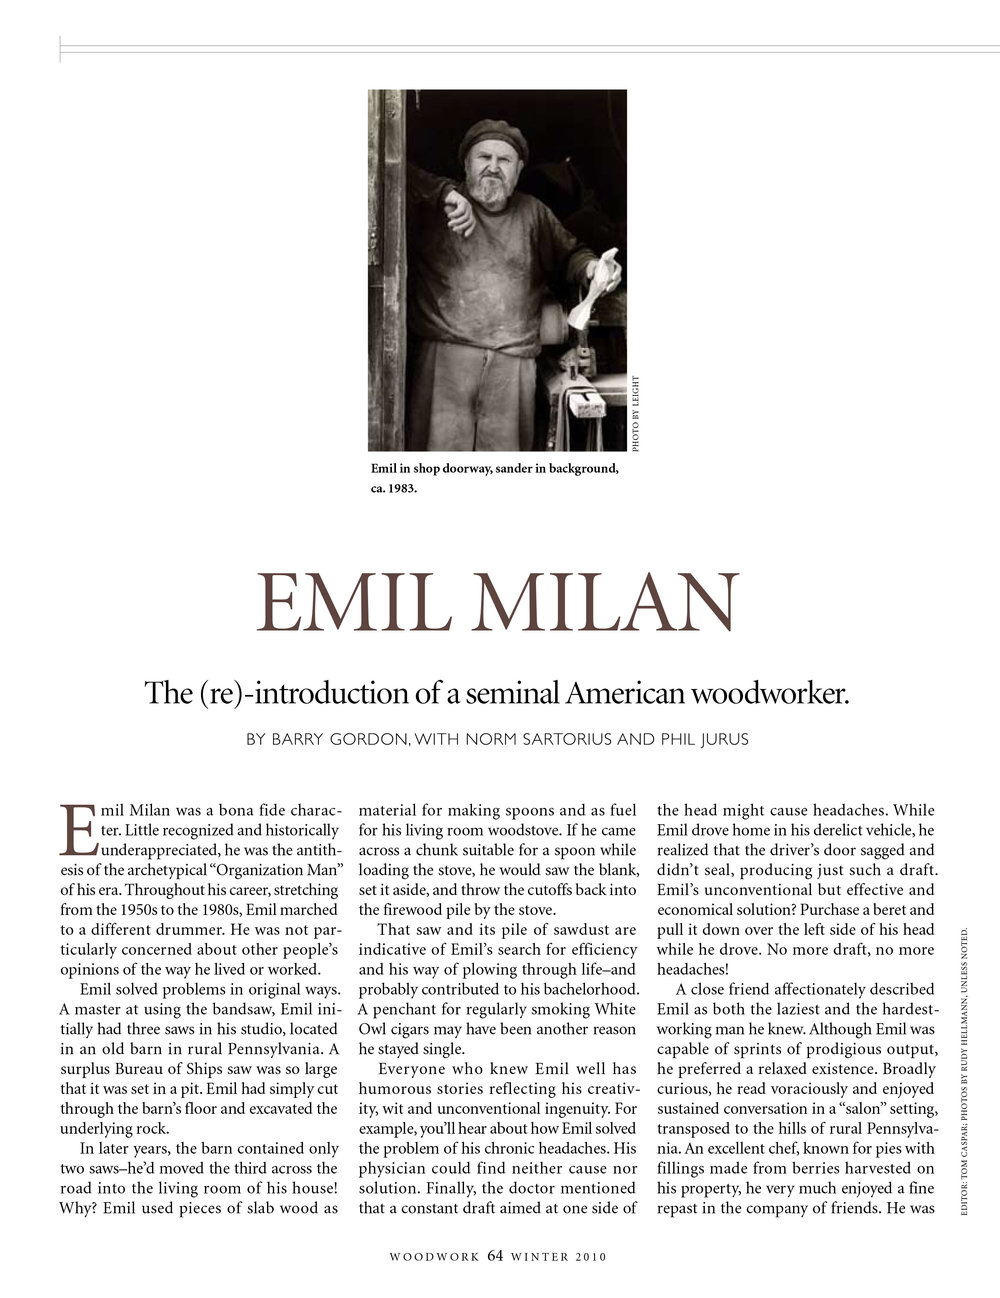 The first article on Emil Milan published as a result of the research grant the Emil Milan Research Team received from the CCCD, 2010.